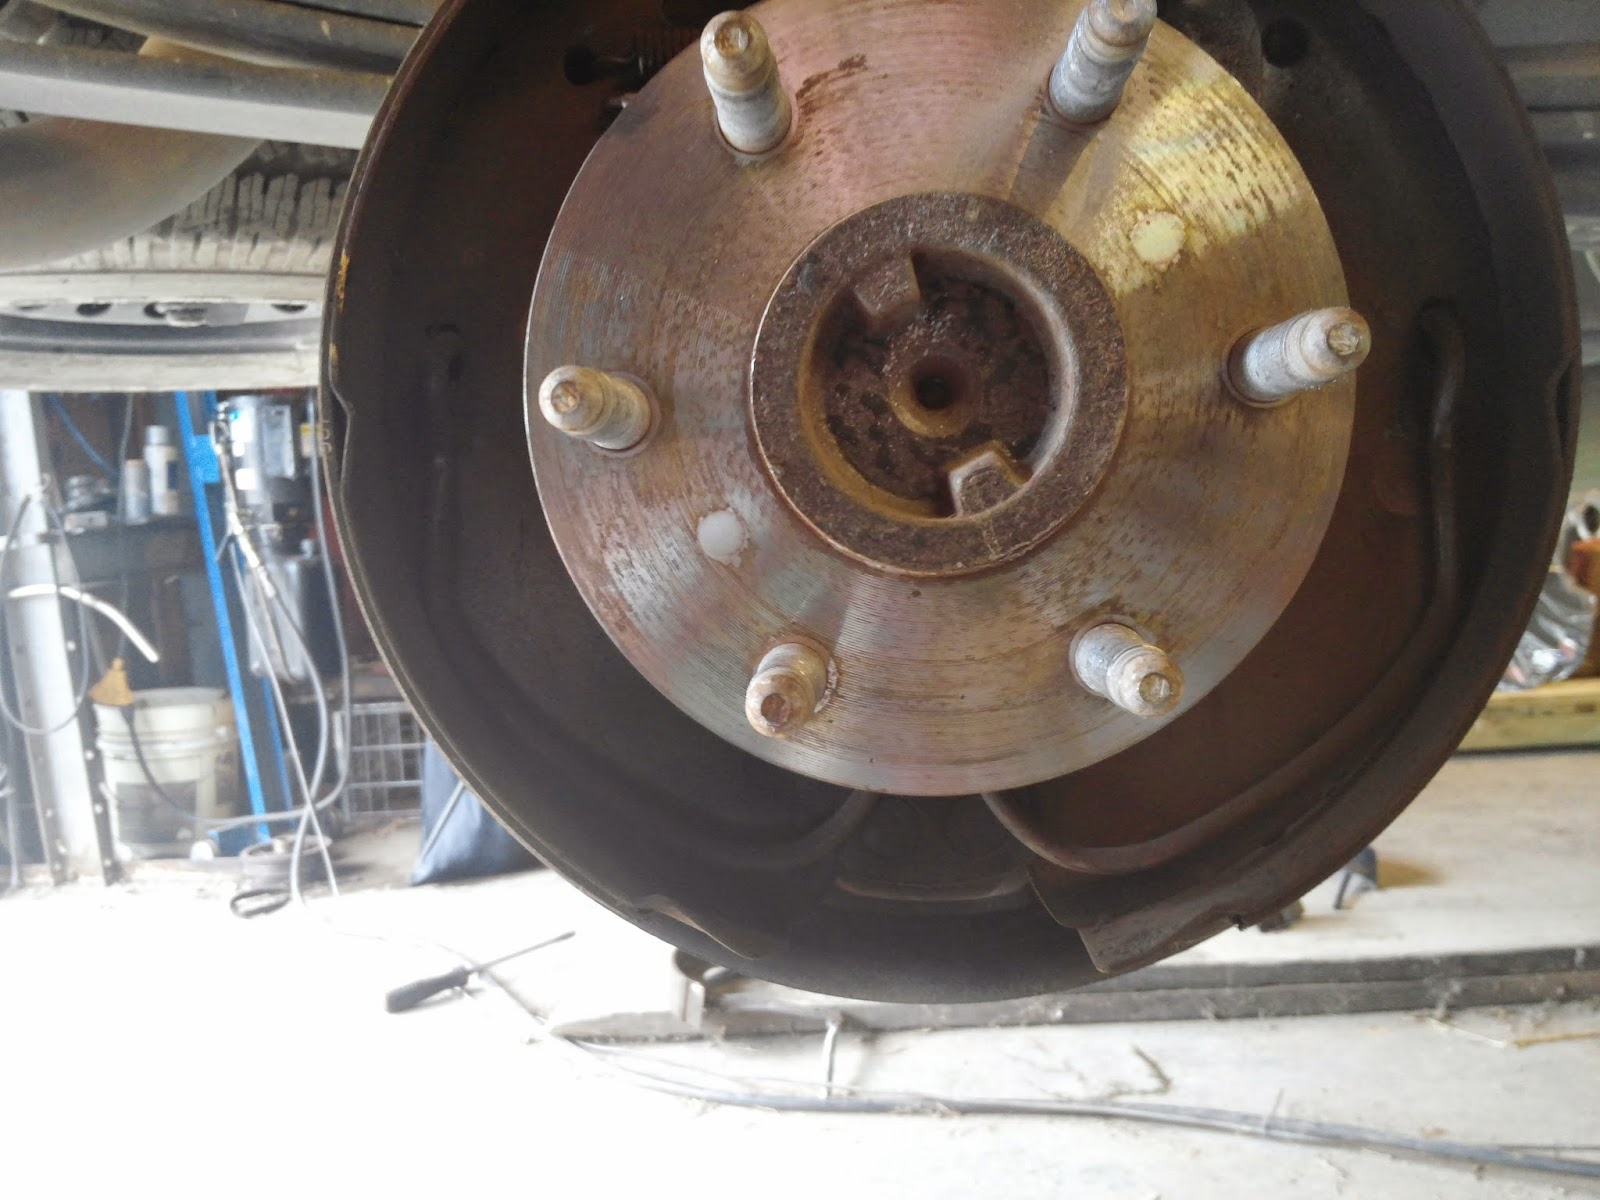 medium resolution of in the picture below you will see one of the brake shoes on this application the whole apparatus is replaced when you purchase the new brake shoes